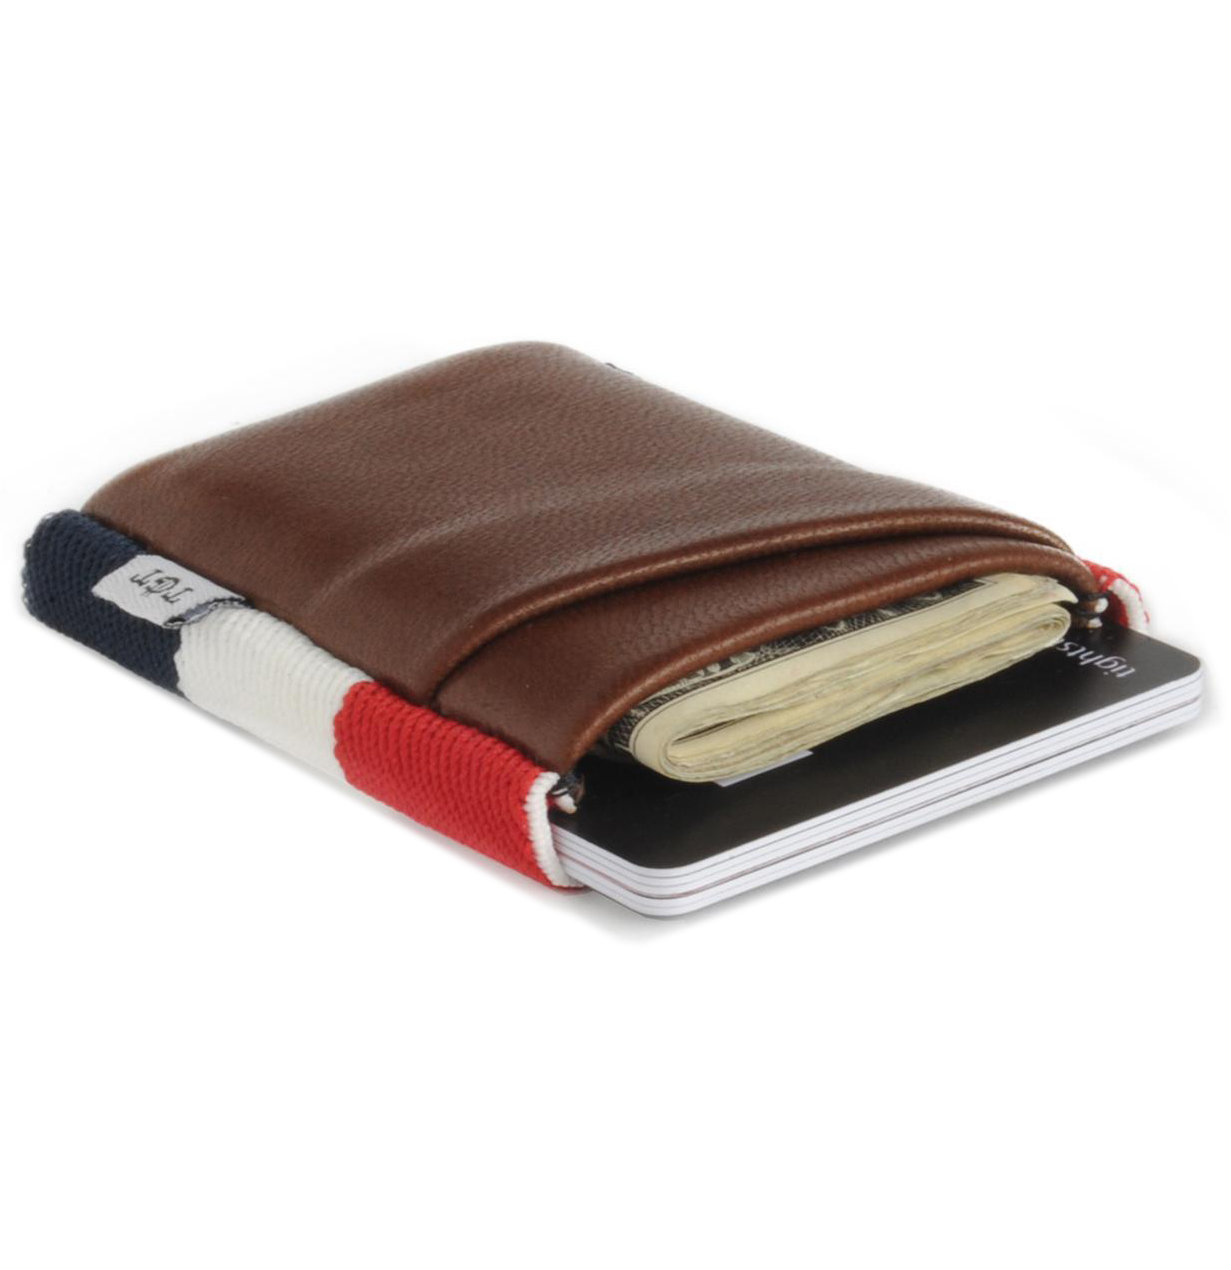 Valentines Day Gifts for Him: Americana Deluxe Wallet From Aha Life